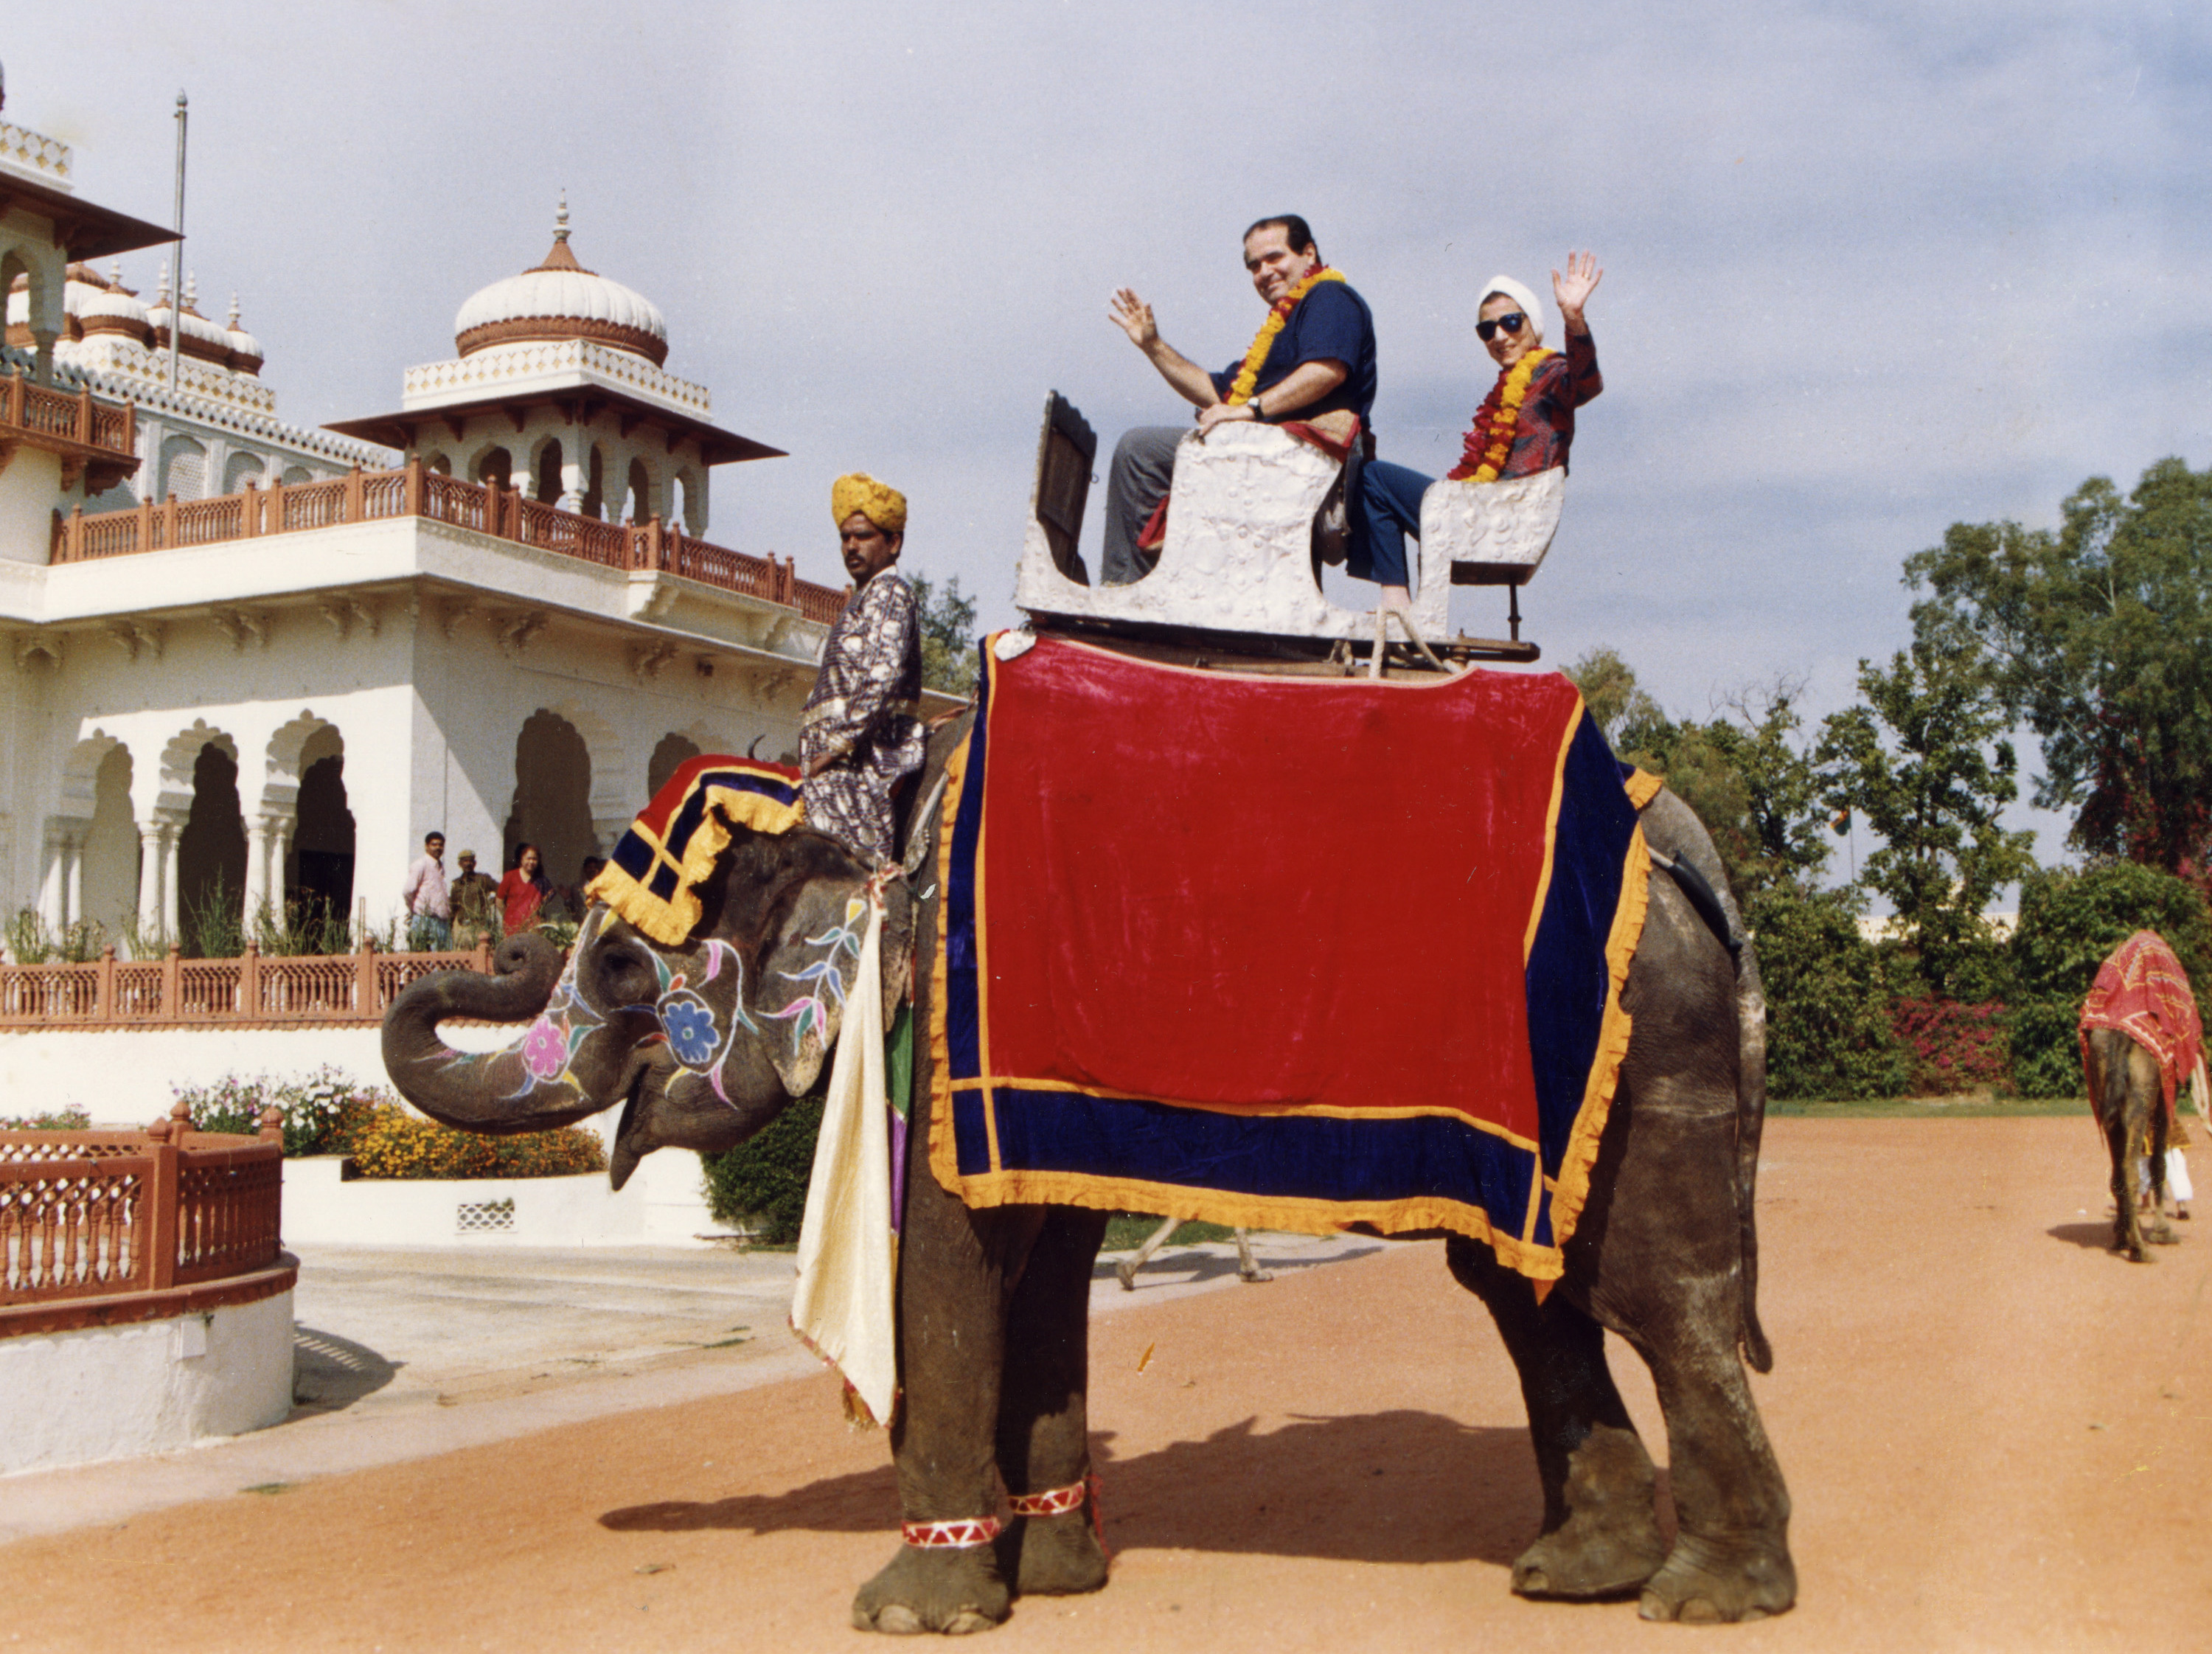 Justice Antonin Scalia and Justice Ginsburg pose on an elephant during their tour of India in 1994. Courtesy of Collection of the Supreme Court of the United States/Simon & Schuster